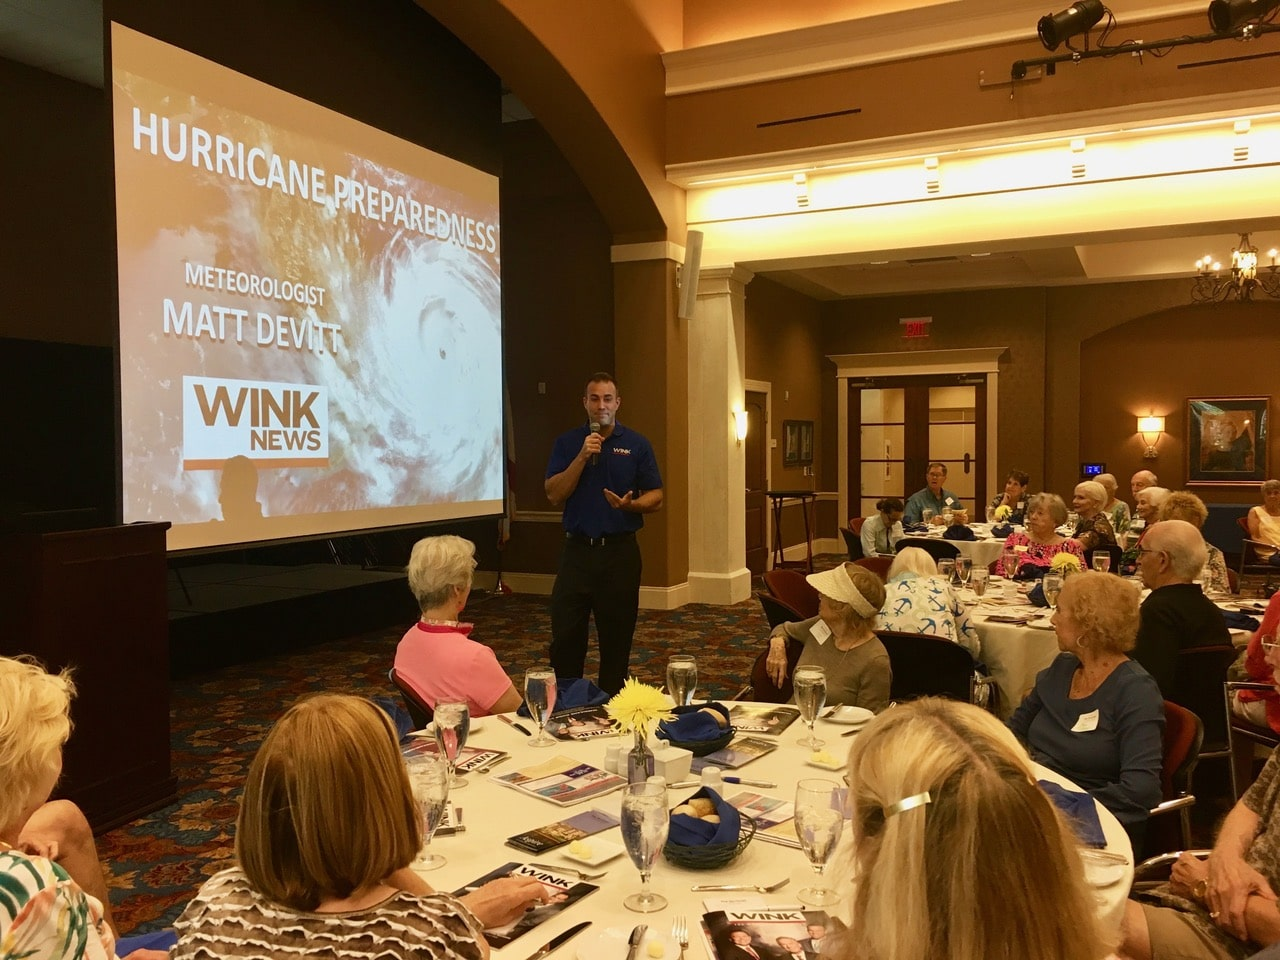 WINK-TV Meteorologist Matt Devitt shares hurricane  scenarios and forecast for 2019